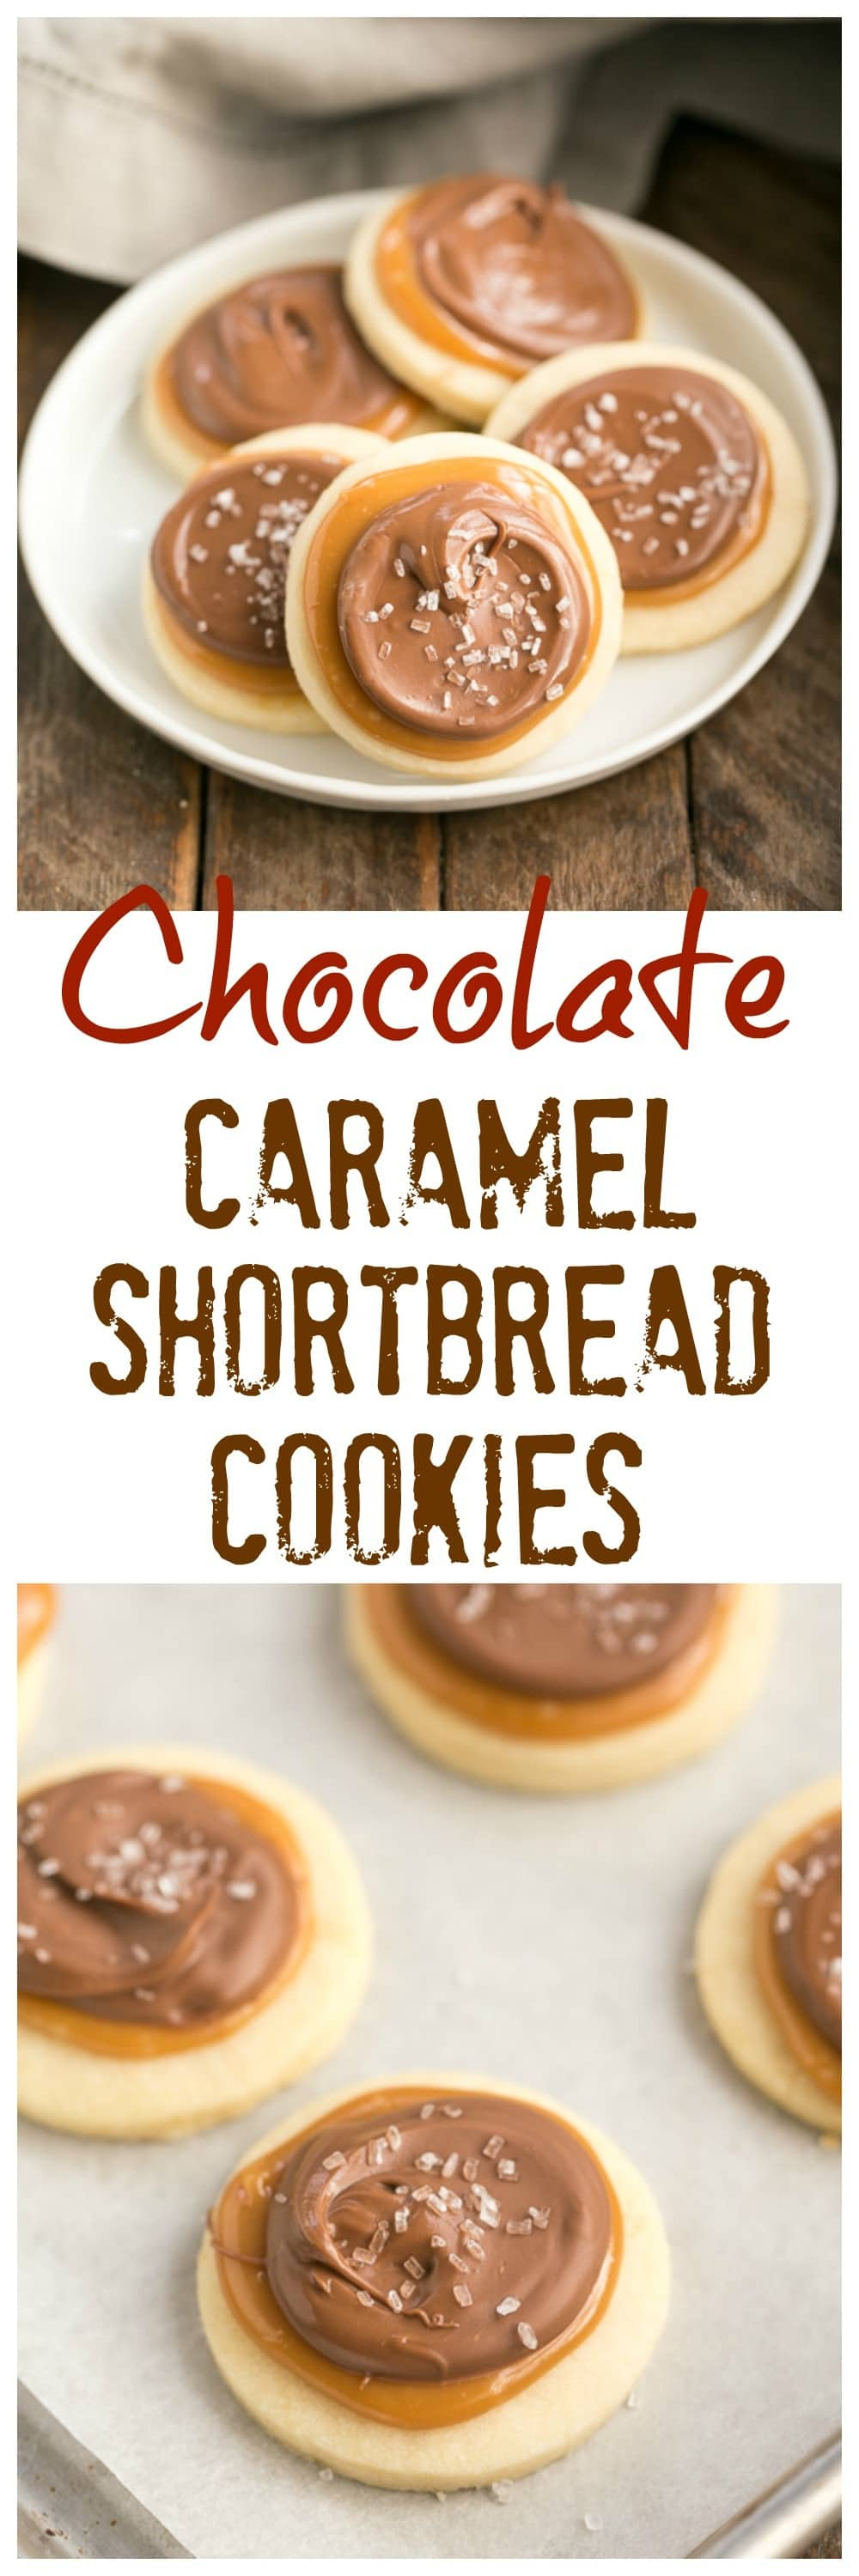 Chocolate Caramel Shortbread Cookies | All the flavors of a Twix bar in one delectable cookie!